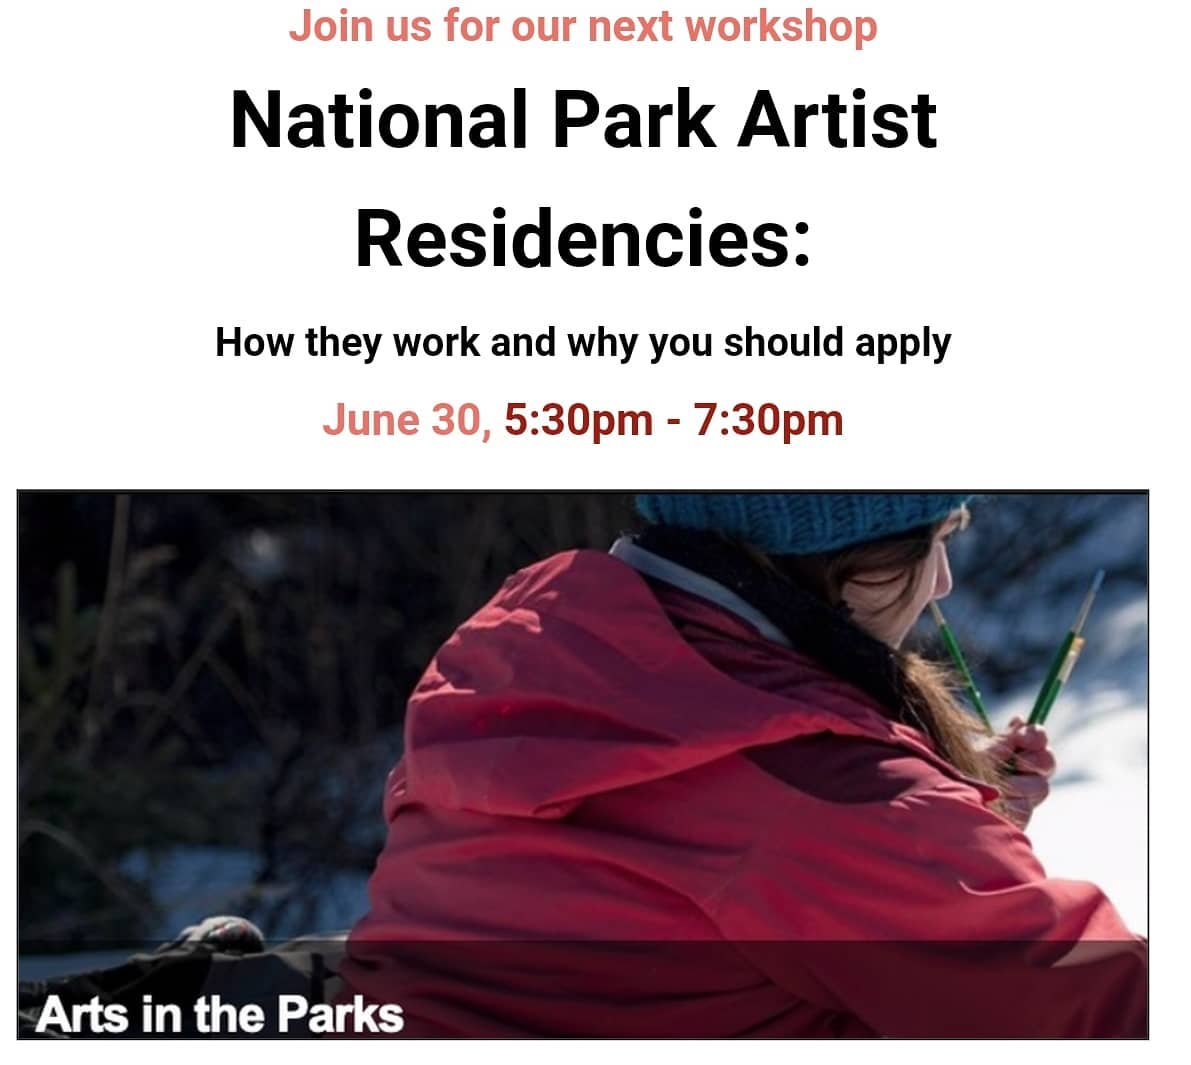 Text and image: National Park Artist Residencies - Woman creating art installation in the snow